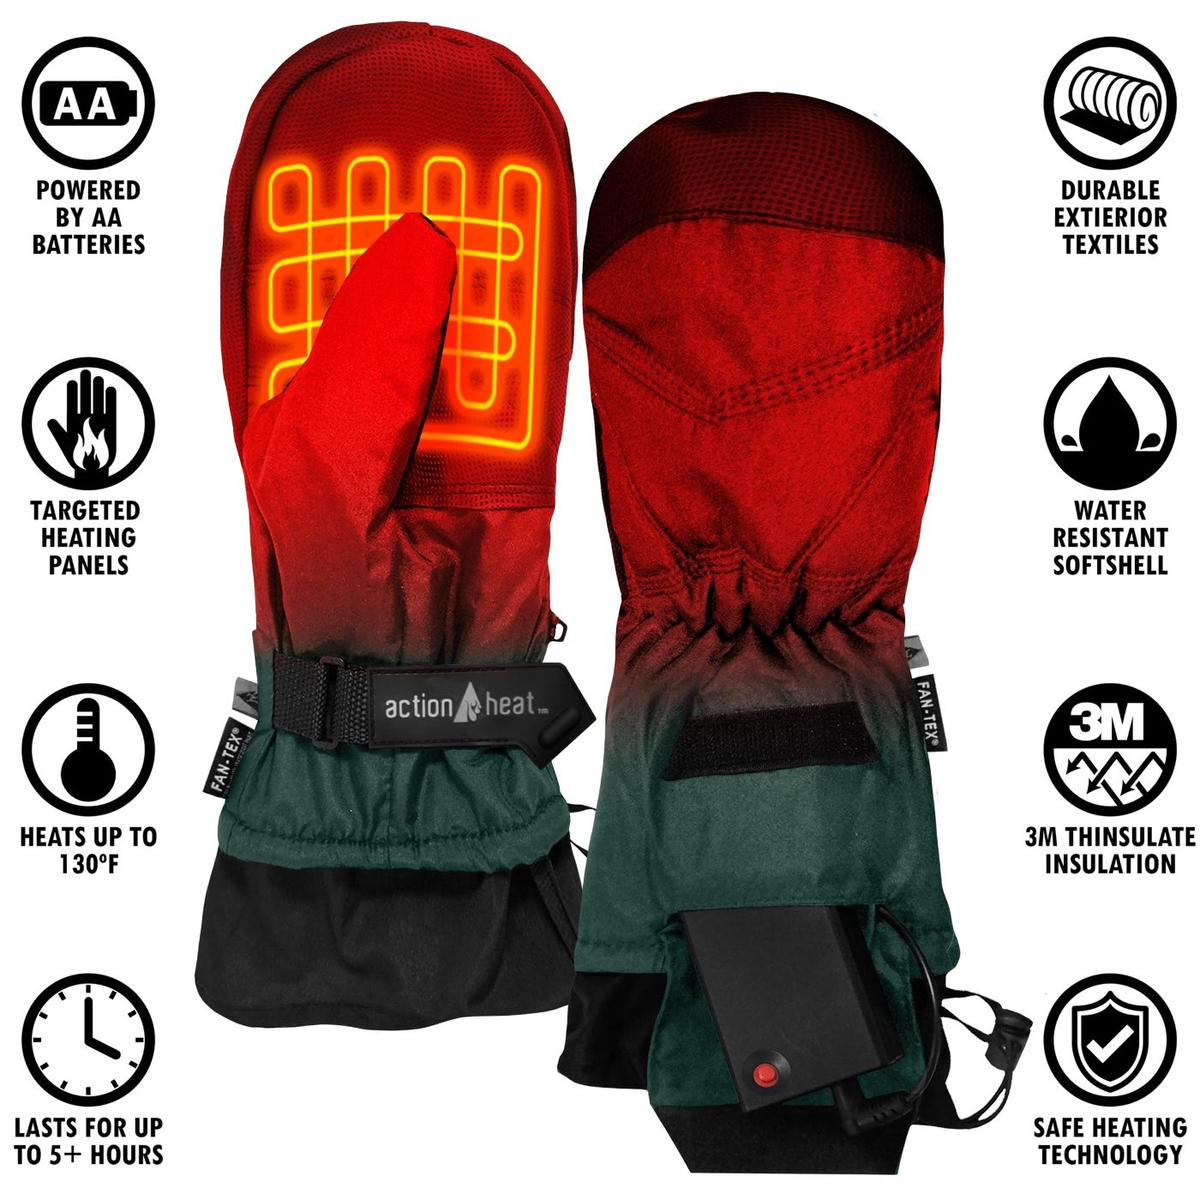 ActionHeat AA Battery Heated Mittens - Info